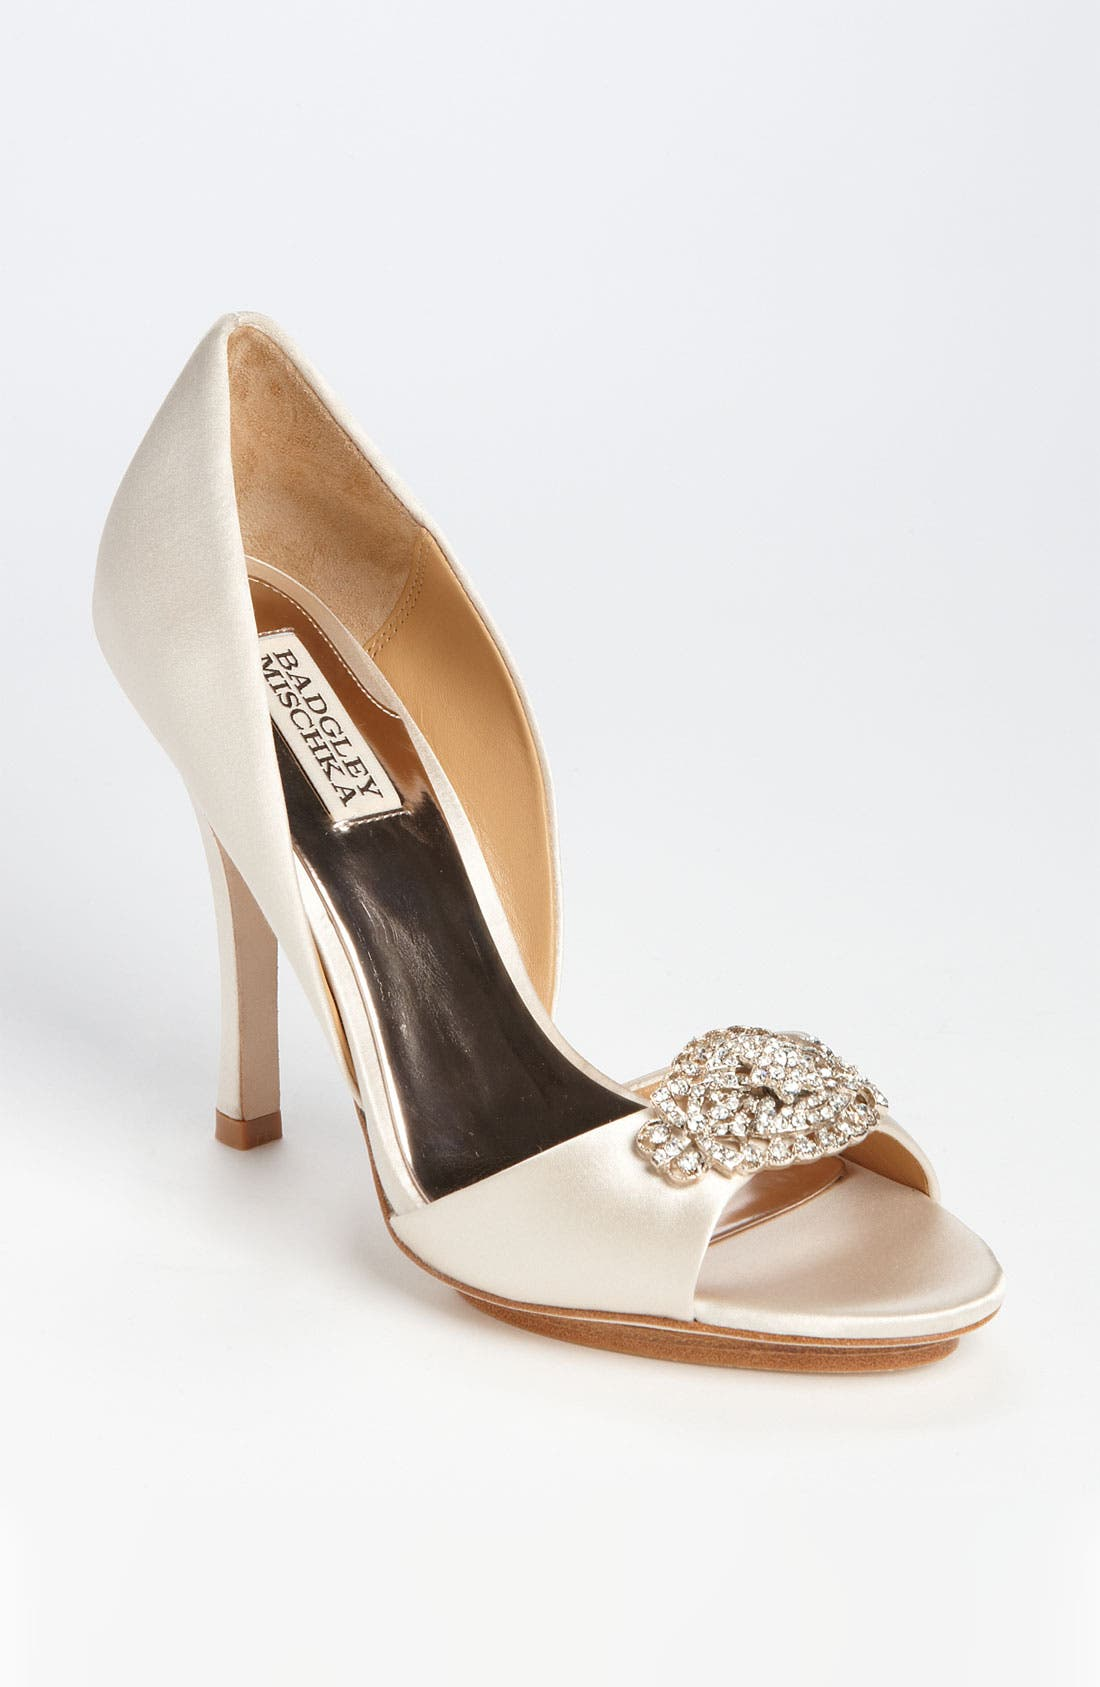 Alternate Image 1 Selected - Badgley Mischka 'Gia' Pump